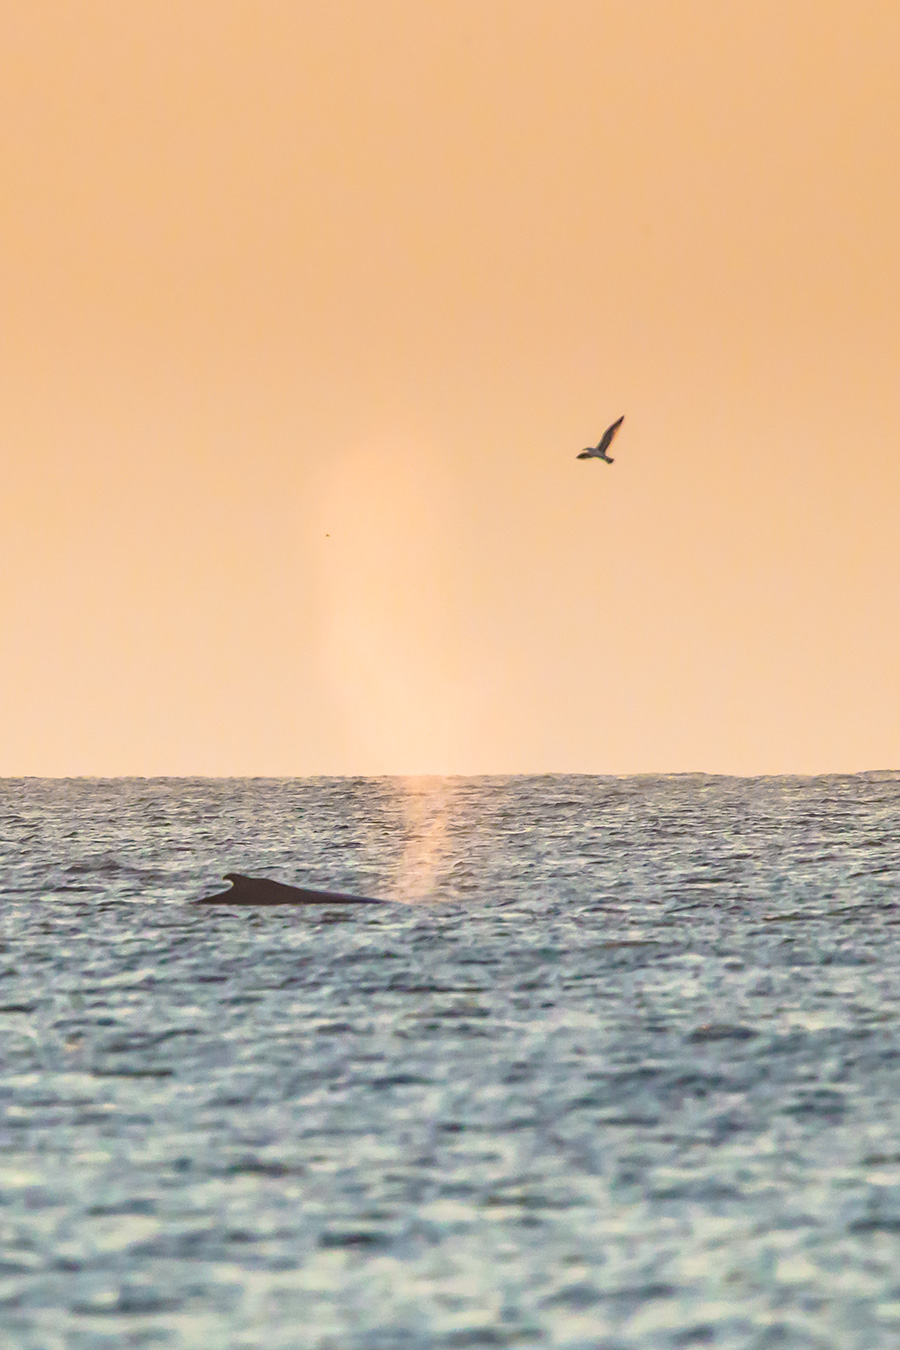 A Humpback off of LBI this morning. Sunrise Humpbacks are the best Humpbacks.